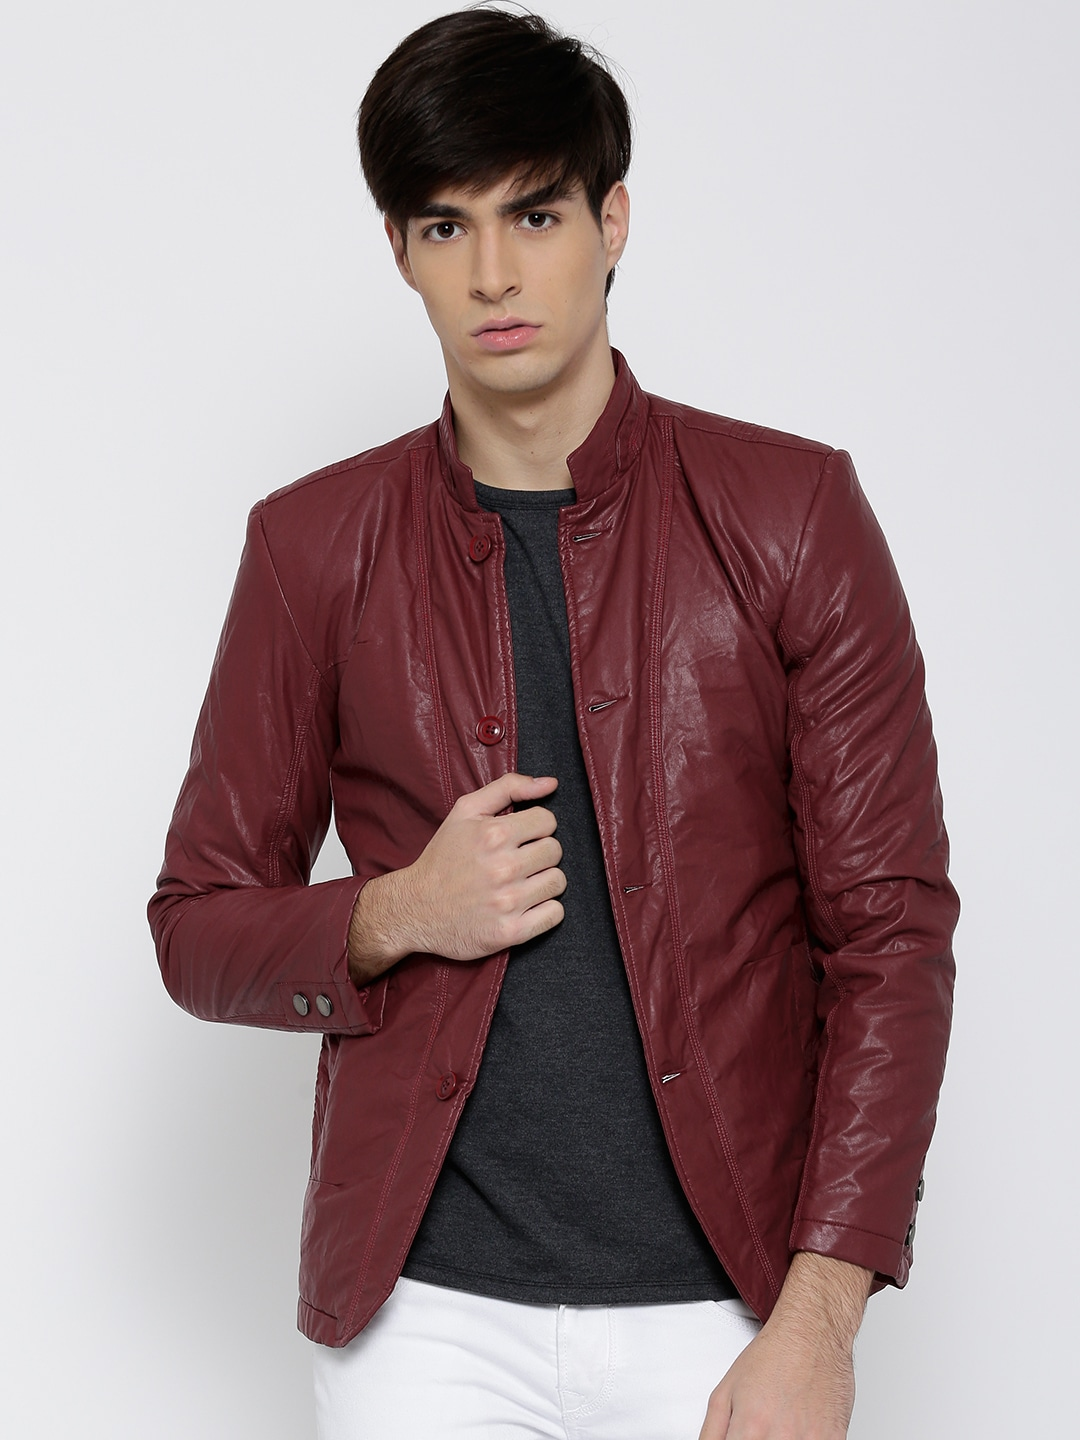 Leather Jackets | Buy Leather Jackets Online in India